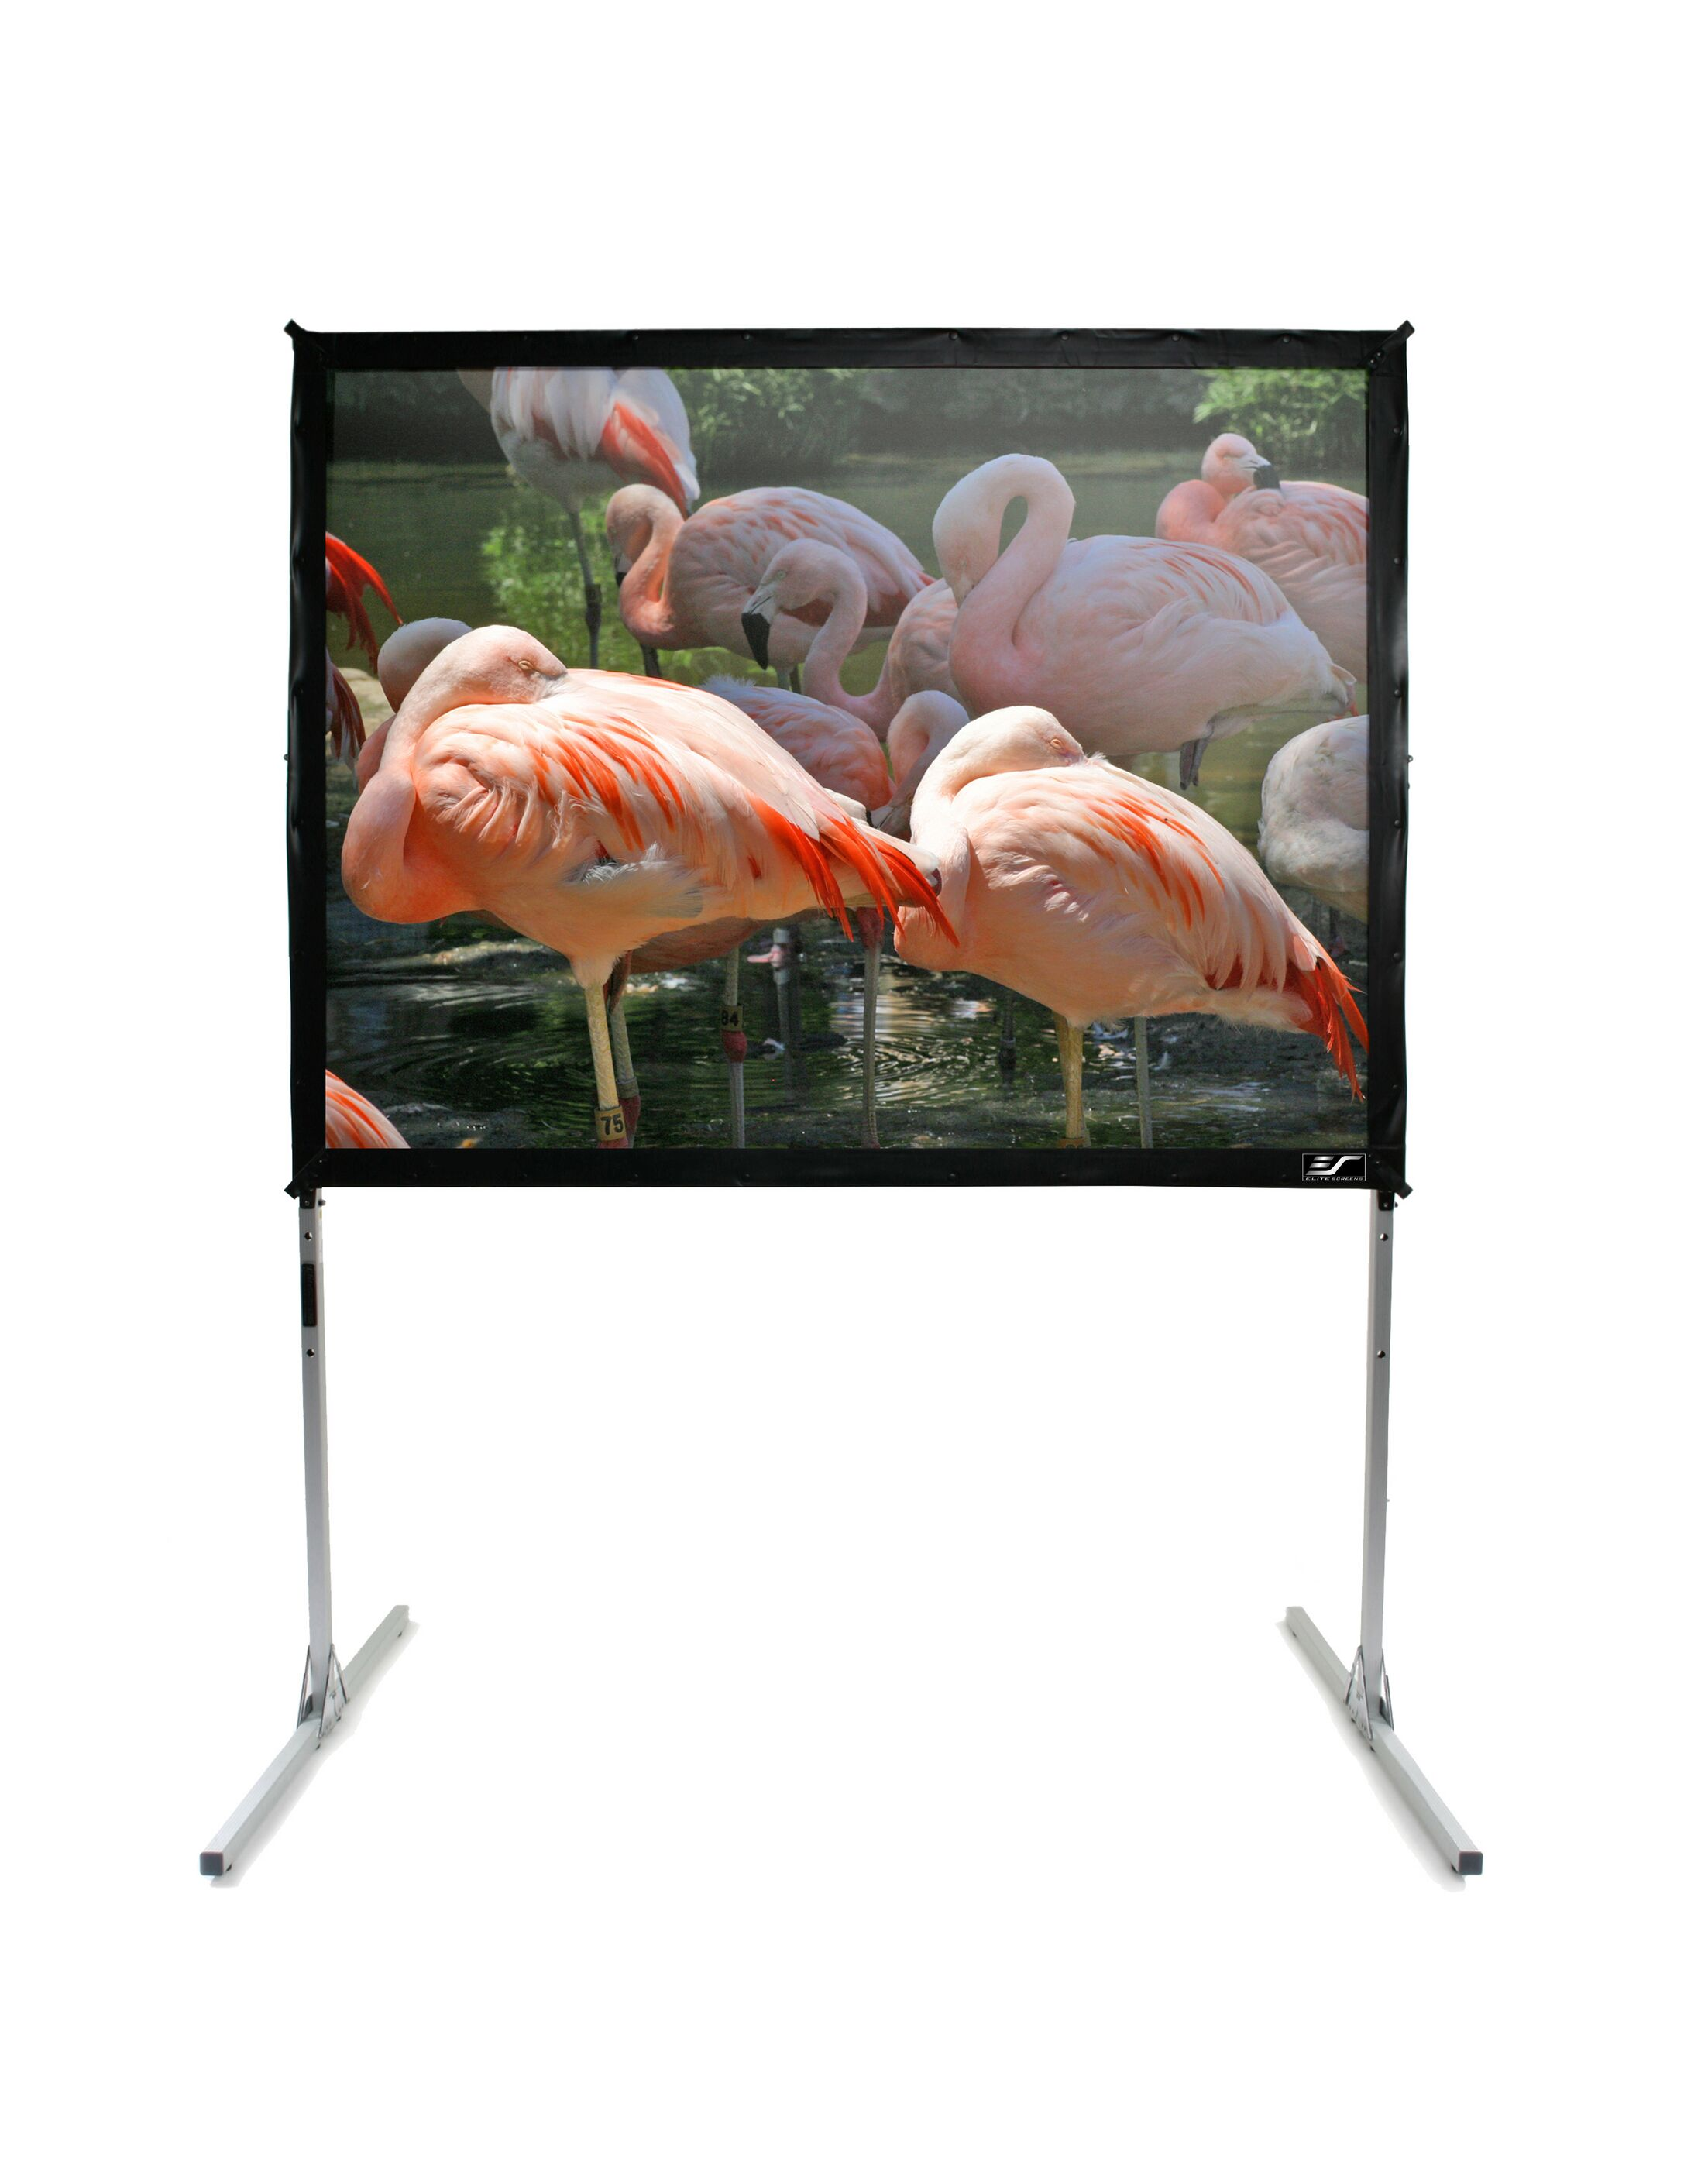 White Portable Projection Screen Viewing Area: 275